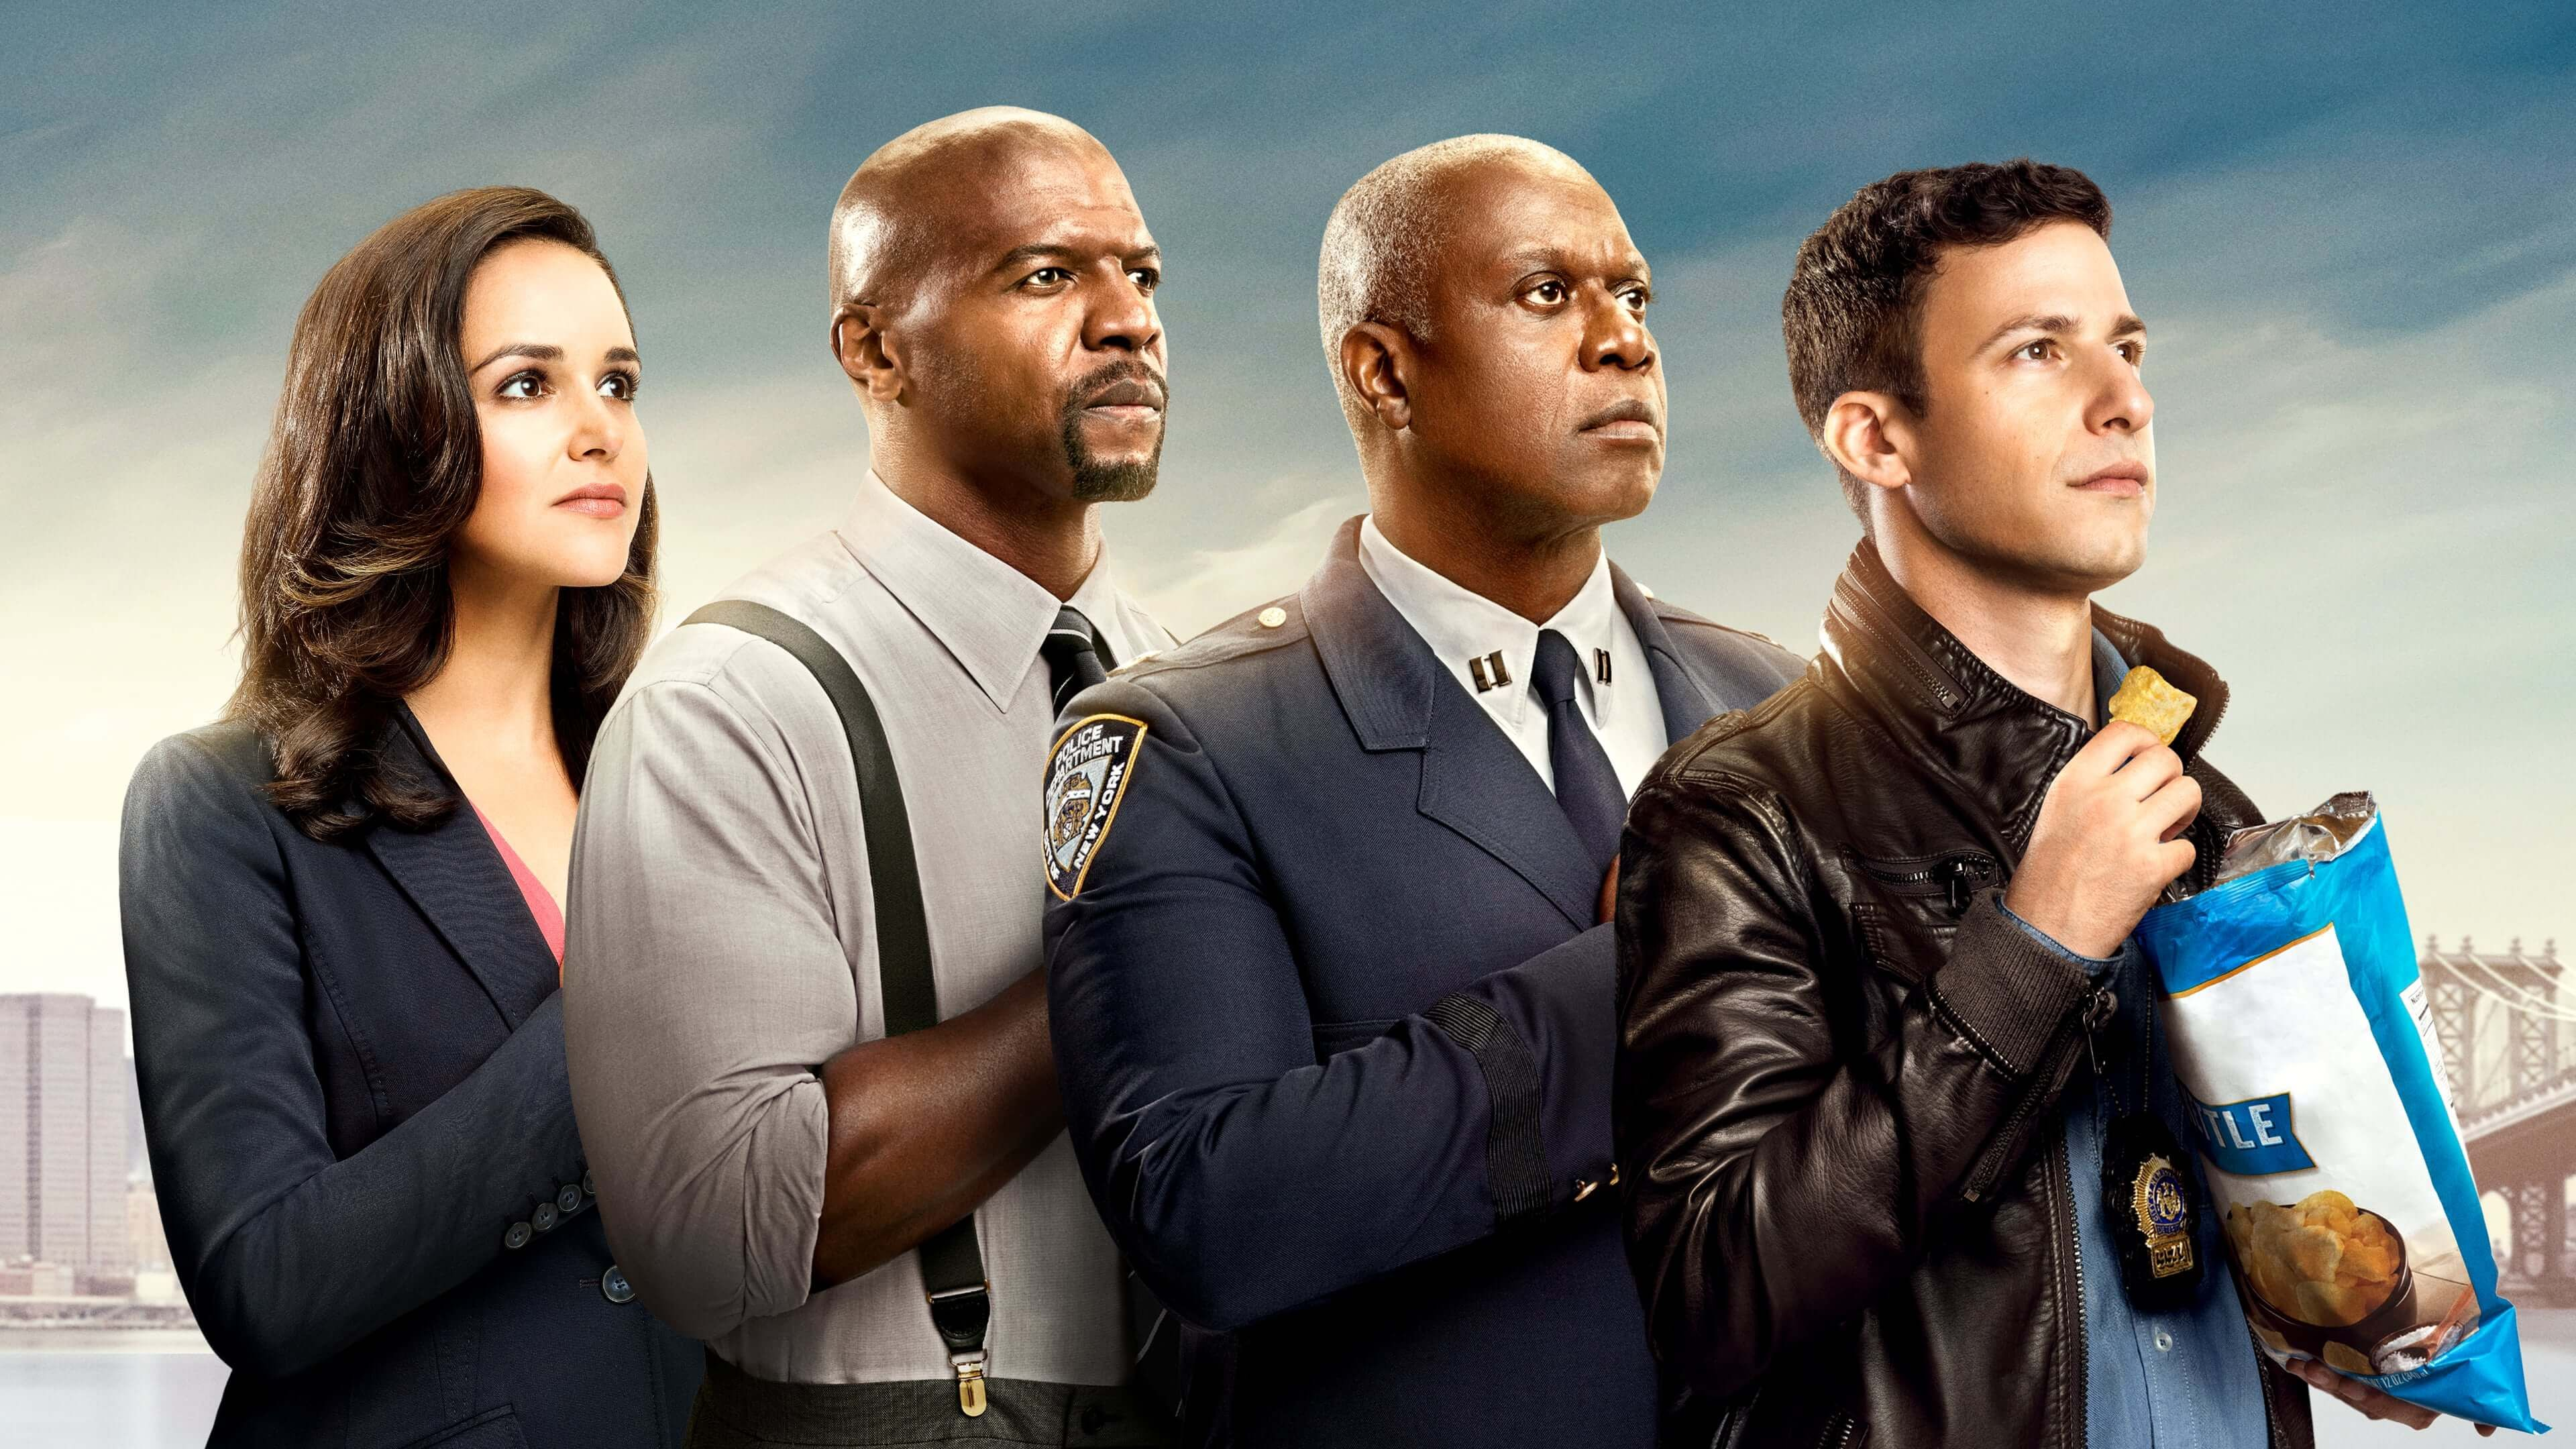 Image may contain: Brooklyn Nine-Nine, Brooklyn 99, season 5, cast, series five, Netflix, new, Military Uniform, Crowd, Accessories, Tie, Accessory, Military, Suit, Overcoat, Jacket, Coat, Person, Human, Apparel, Clothing